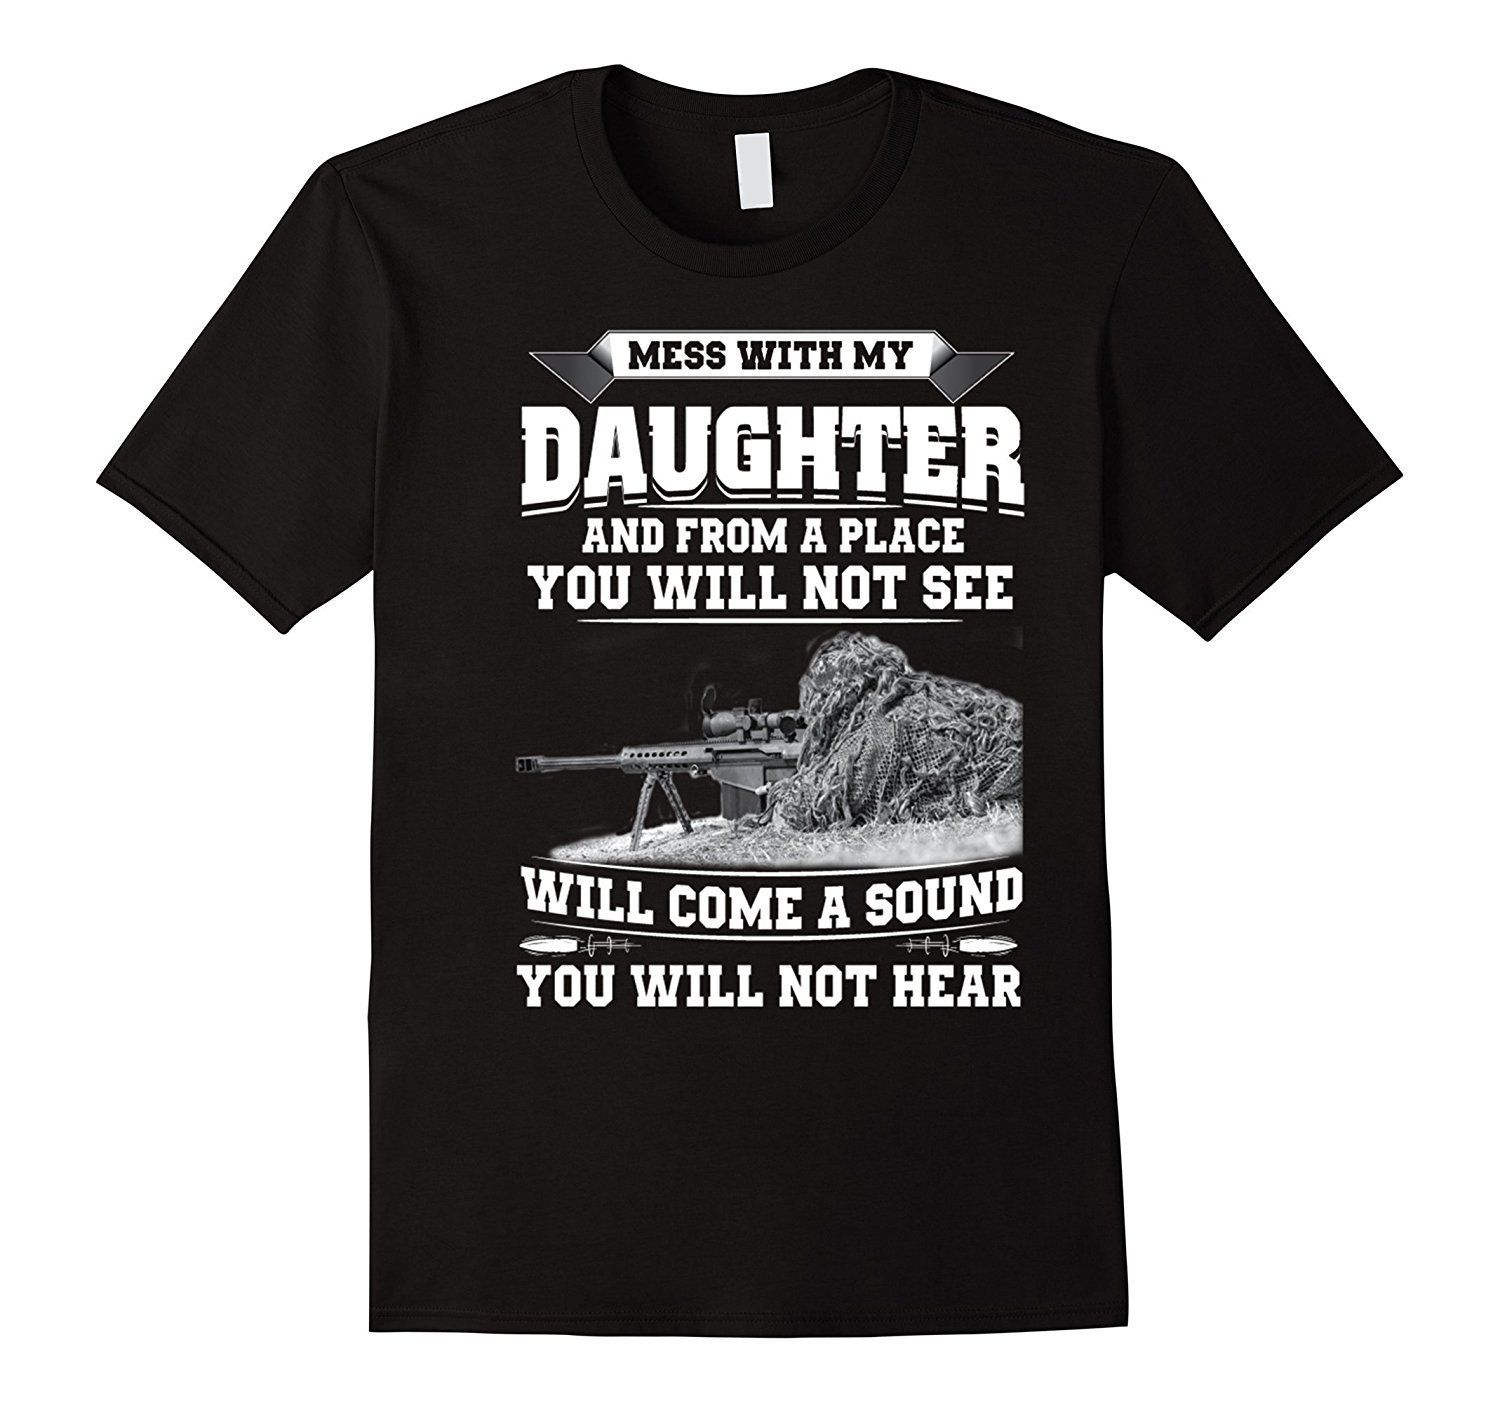 Mess With My Daughter and from a place you_will not see will come a sound_you will not hear T-Shirt